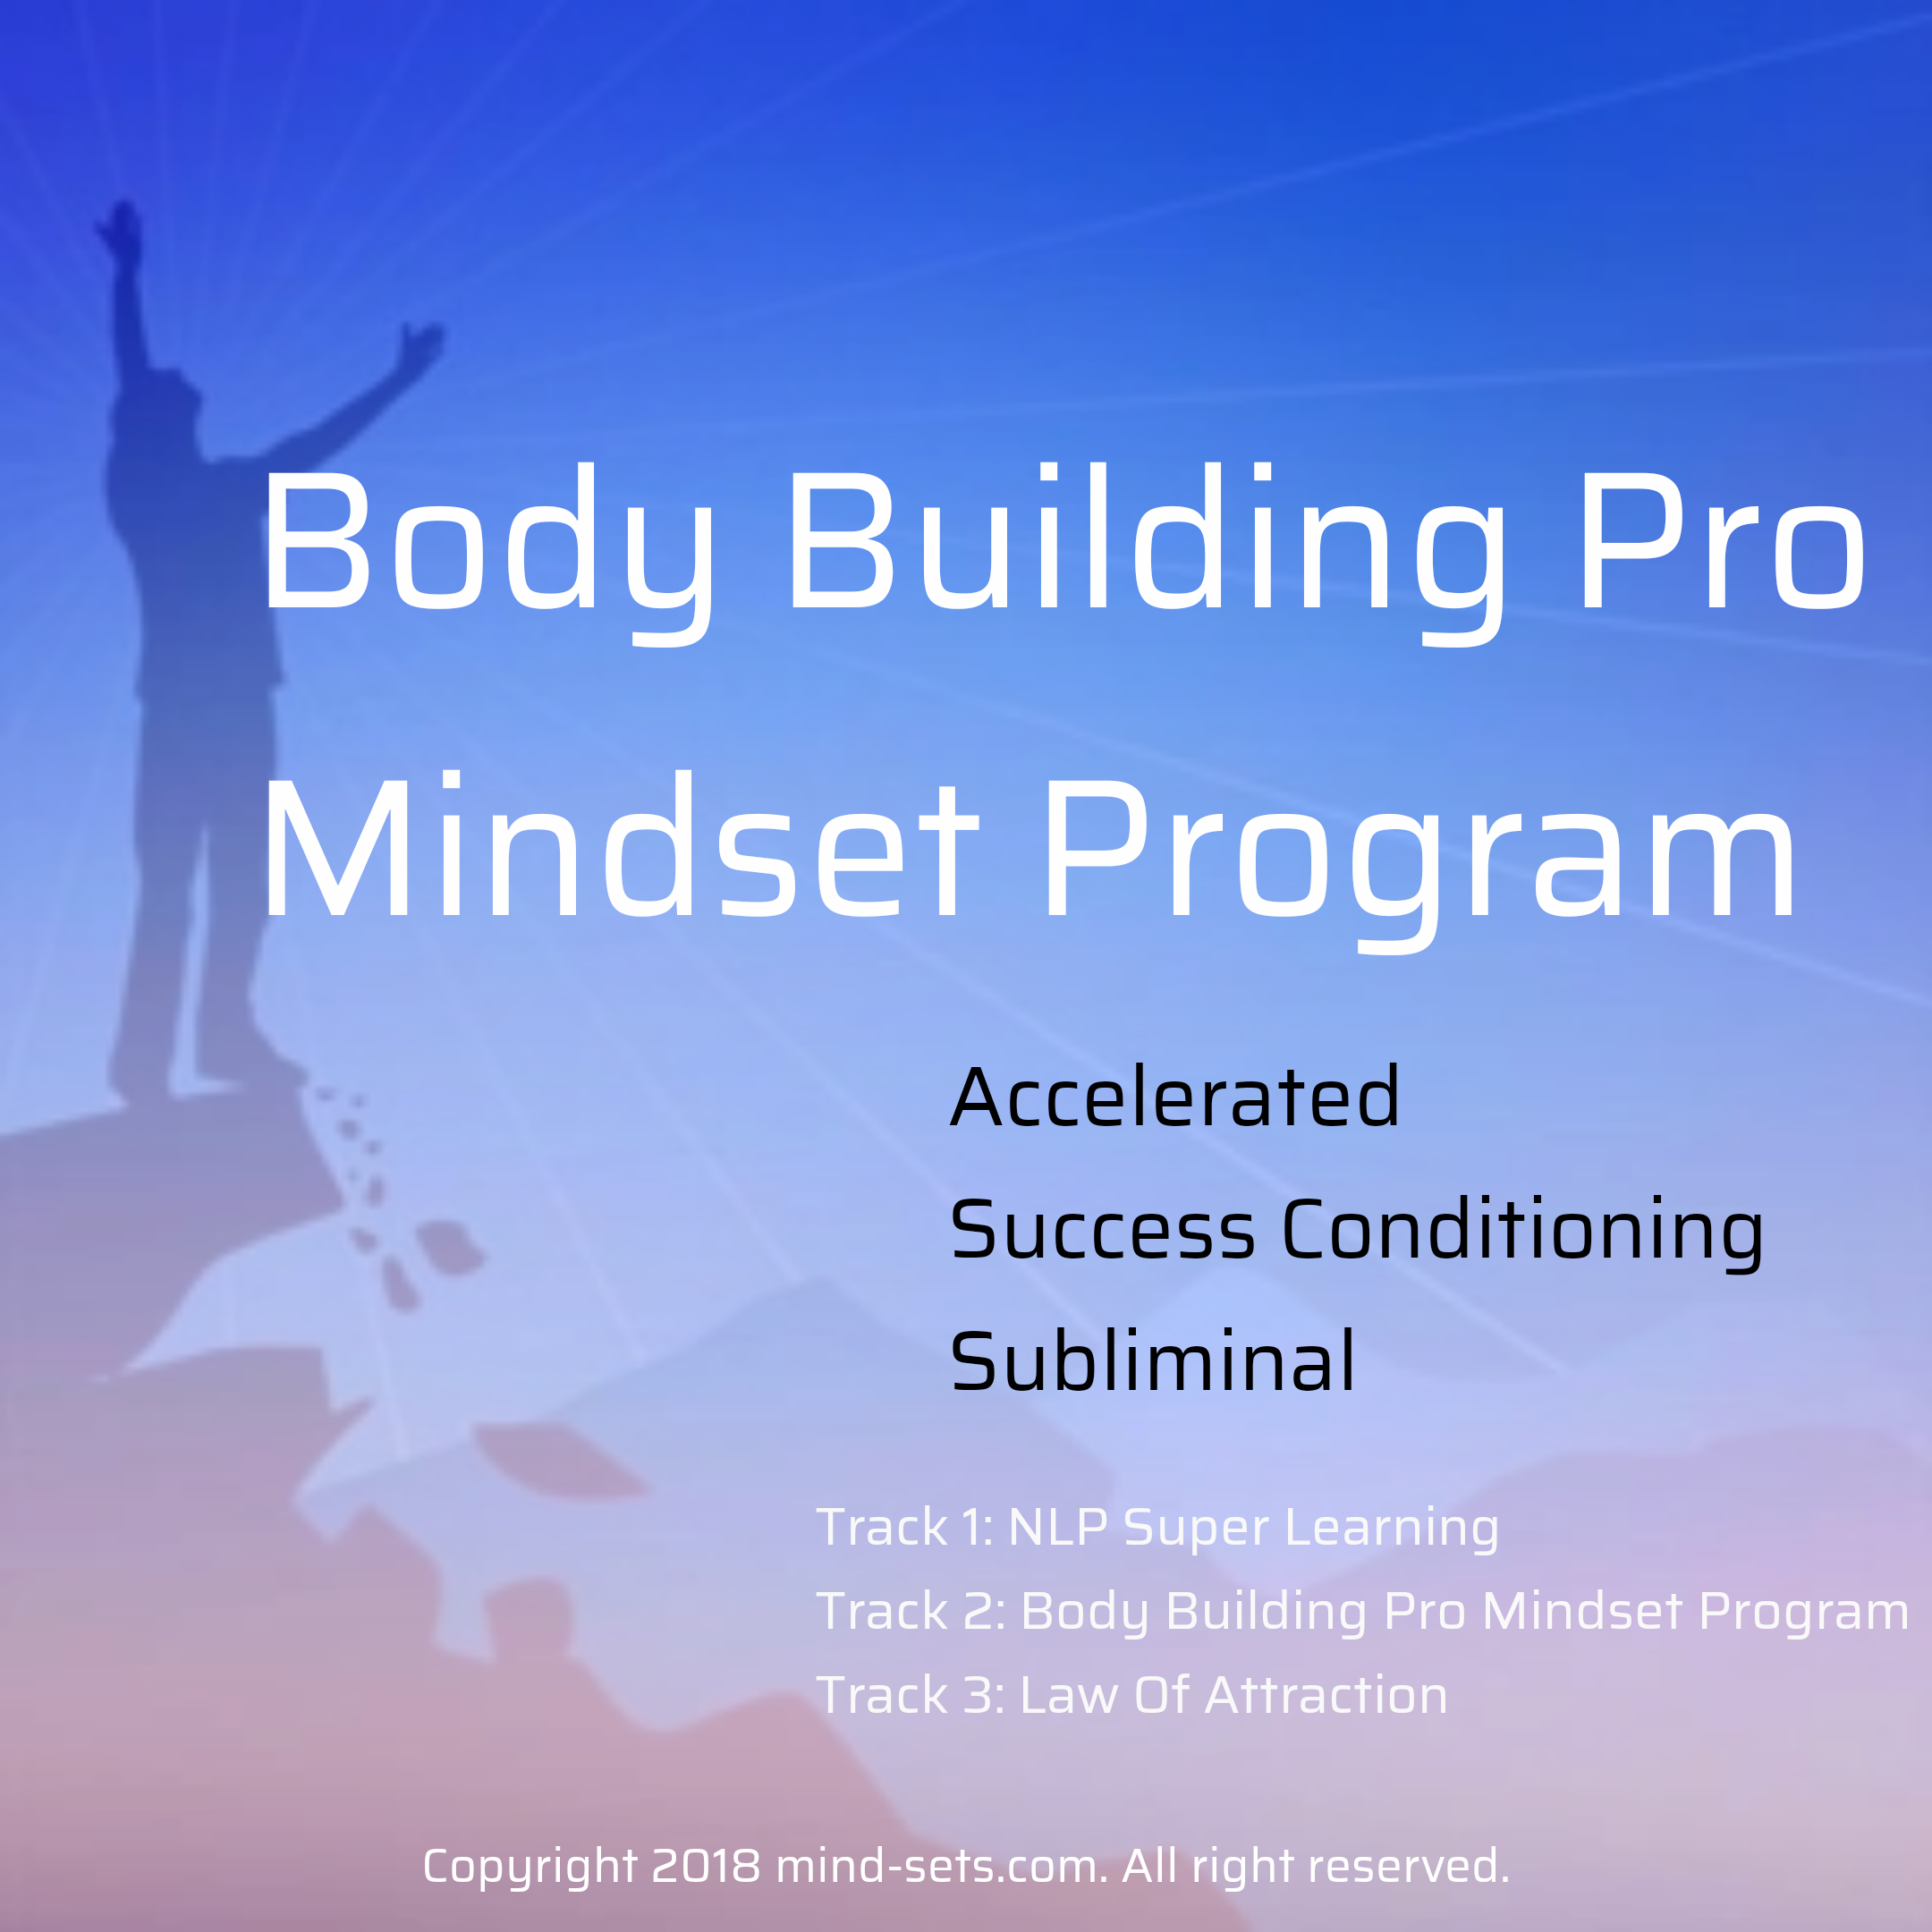 Body Building Pro Mindset Program